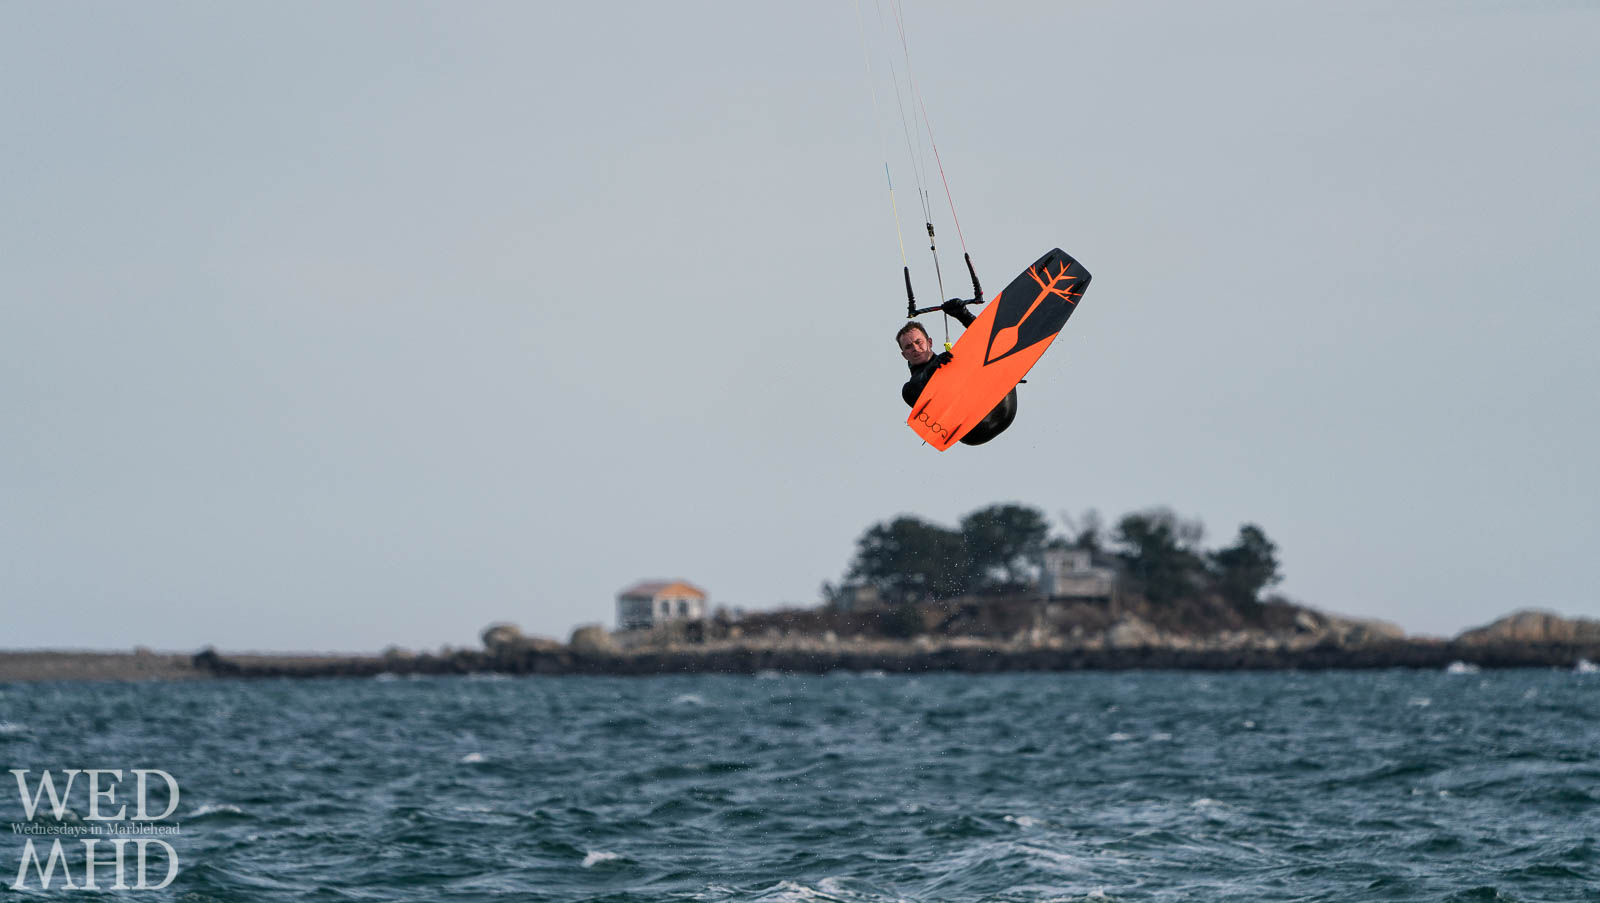 A kite surfer is caught flying over Tinkers Island after catching air on a windy day off Devereux Beach